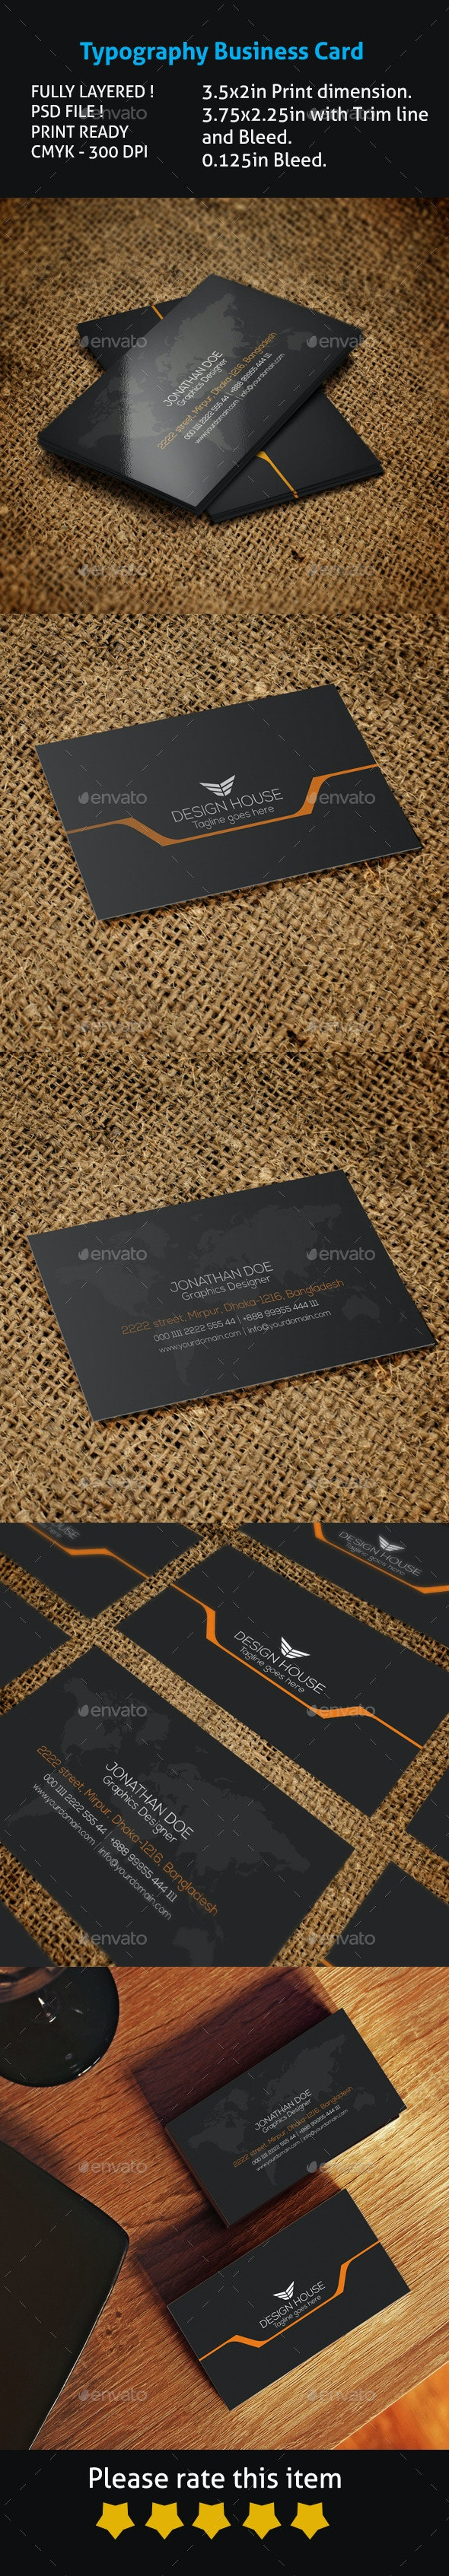 Typography Business Card - Creative Business Cards